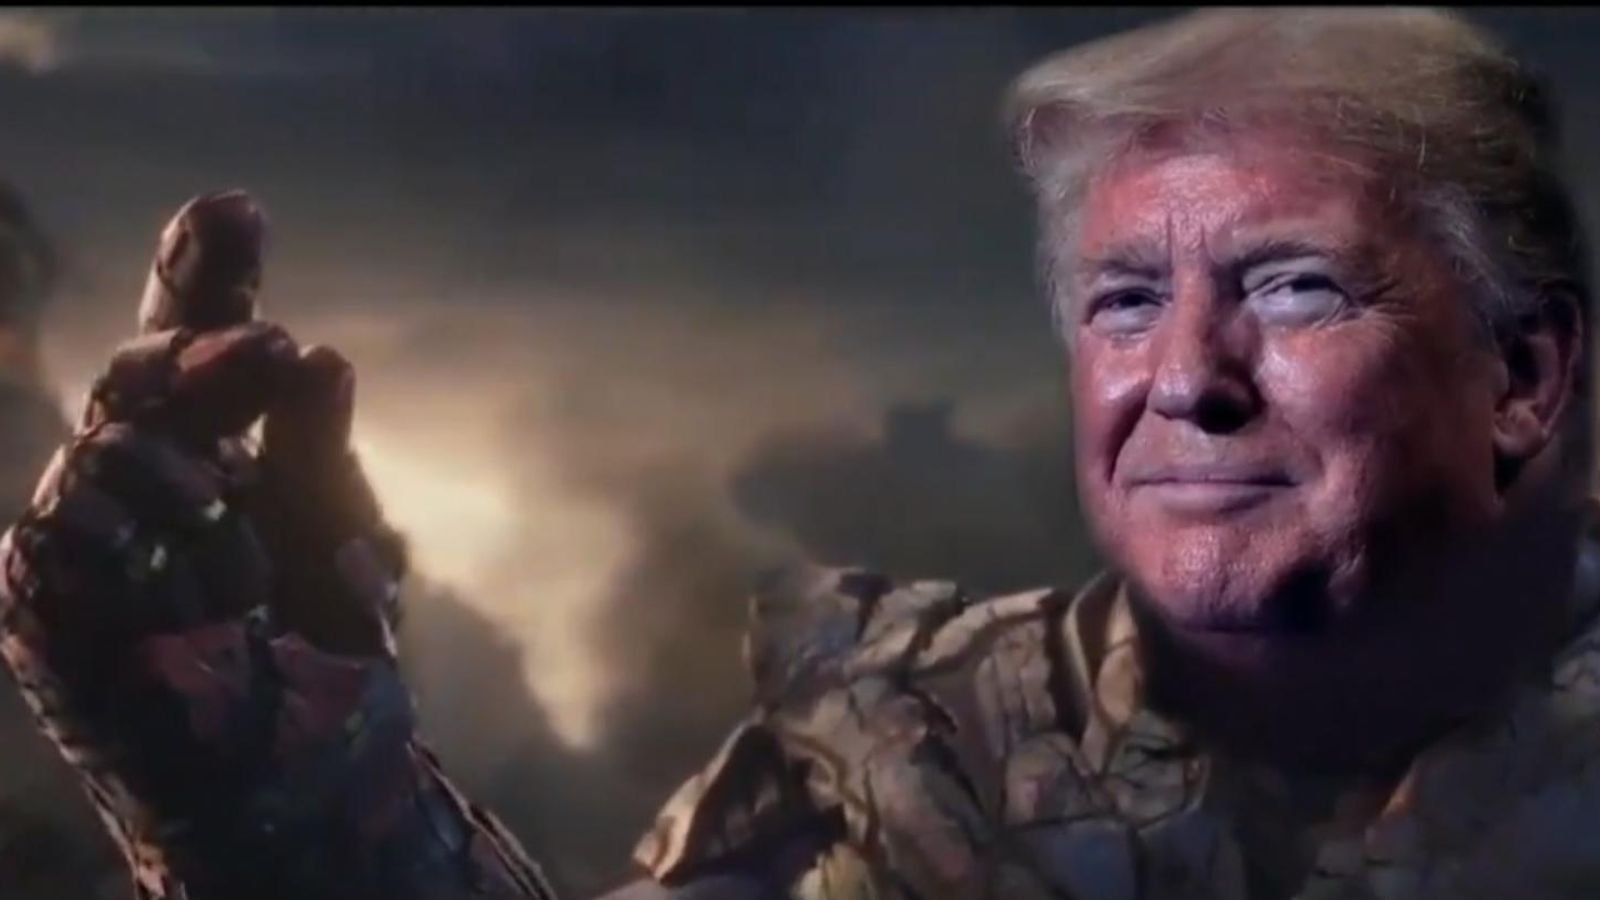 Trump campaign portrays president as Marvel supervillain Thanos